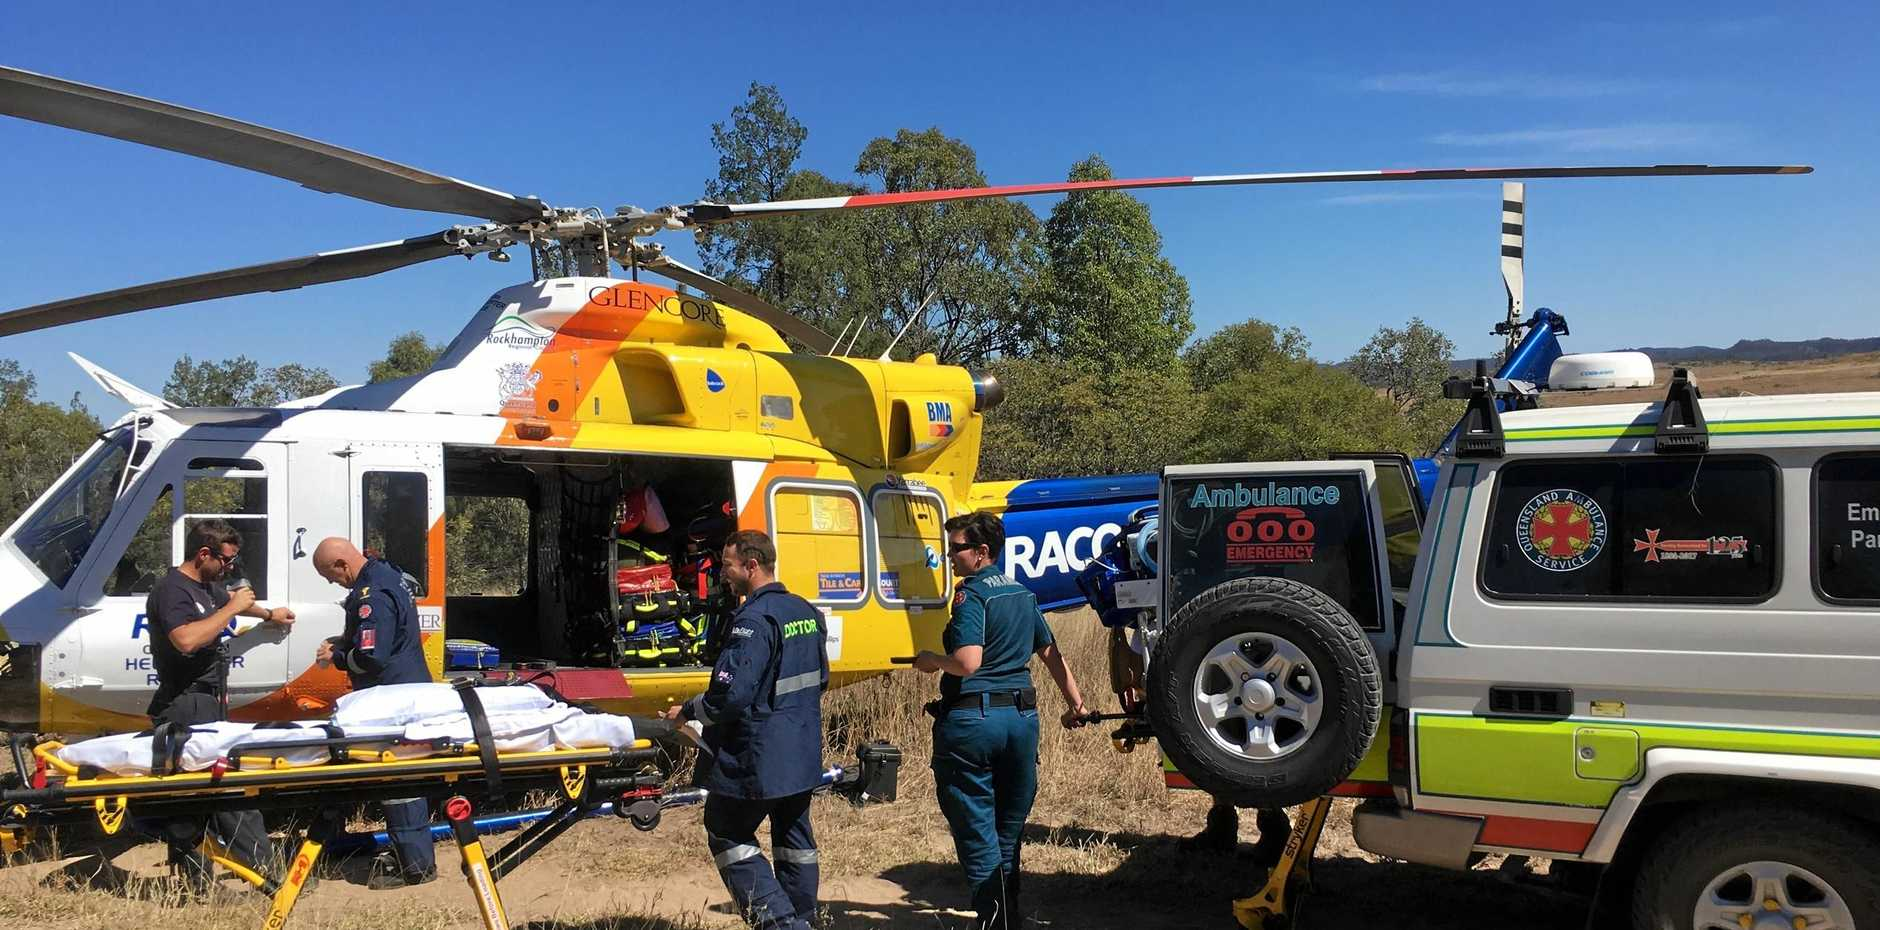 Tara woman airlifted to hospital after car crash | Dalby Herald